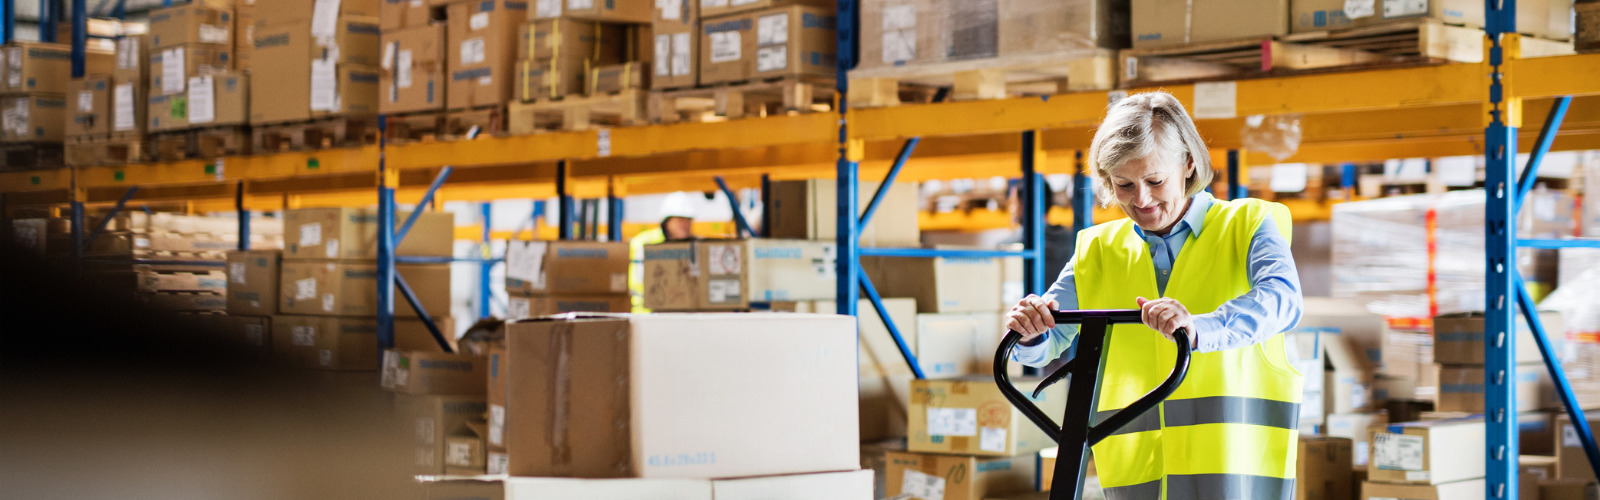 senior-woman-warehouse-worker-pulling-a-pallet-truck-with-boxes-picture-id964380614